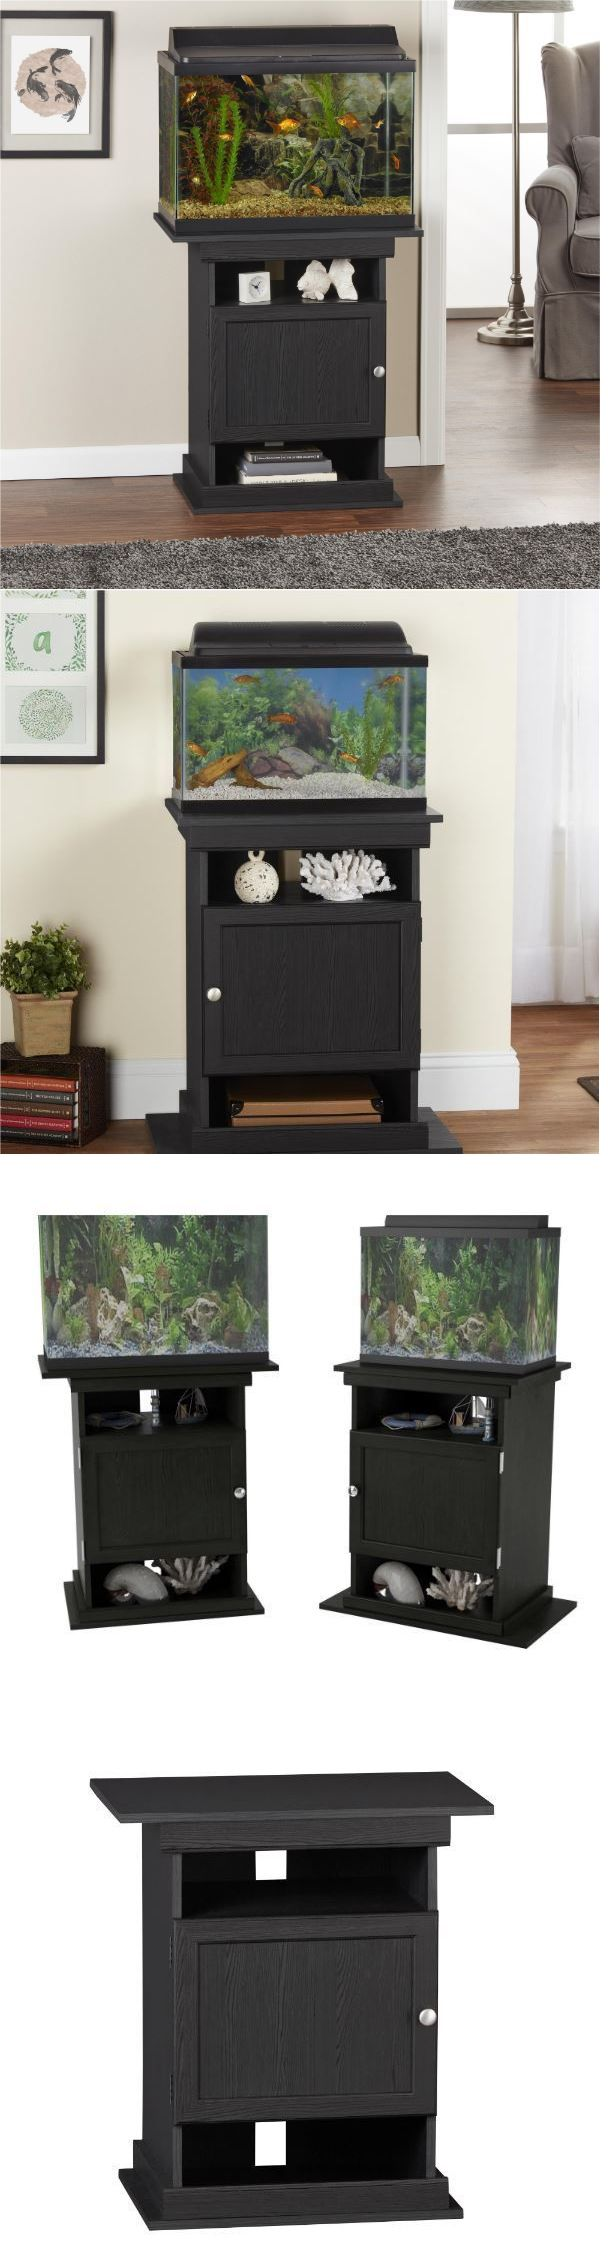 Aquariums and Tanks 20755: Aquarium Stand 20 Gallon 10 Fish Tank Black Turtle Hamster Accessories Black -> BUY IT NOW ONLY: $111.99 on eBay!